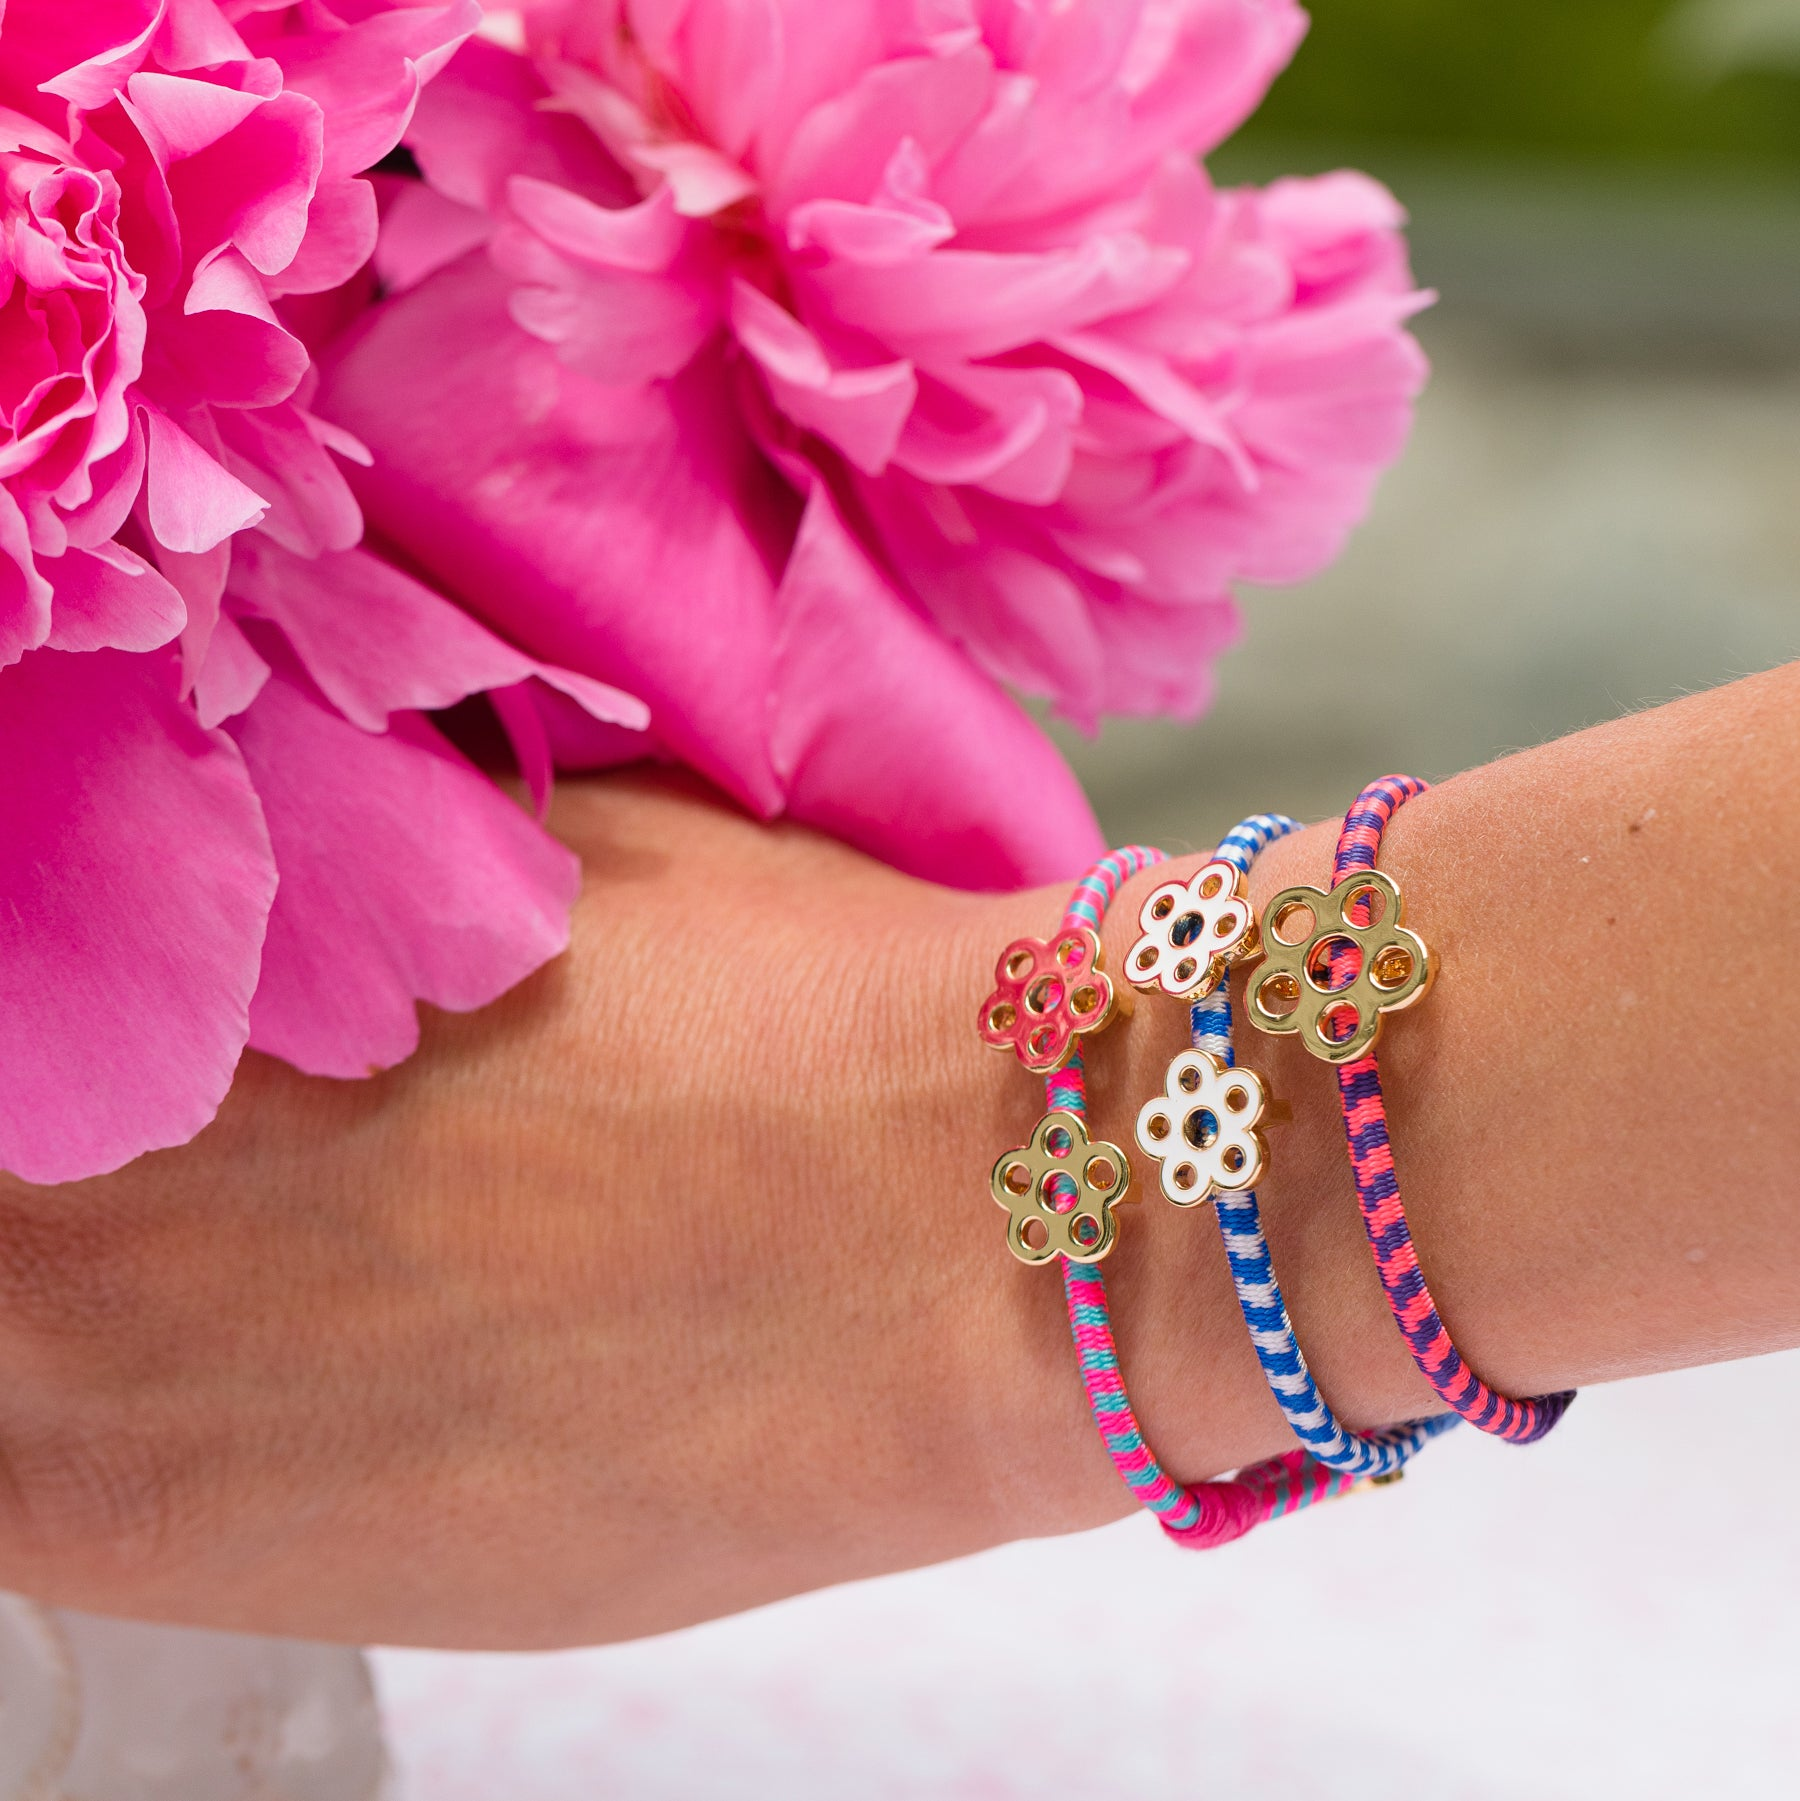 Stretchy Double Flower Bracelet